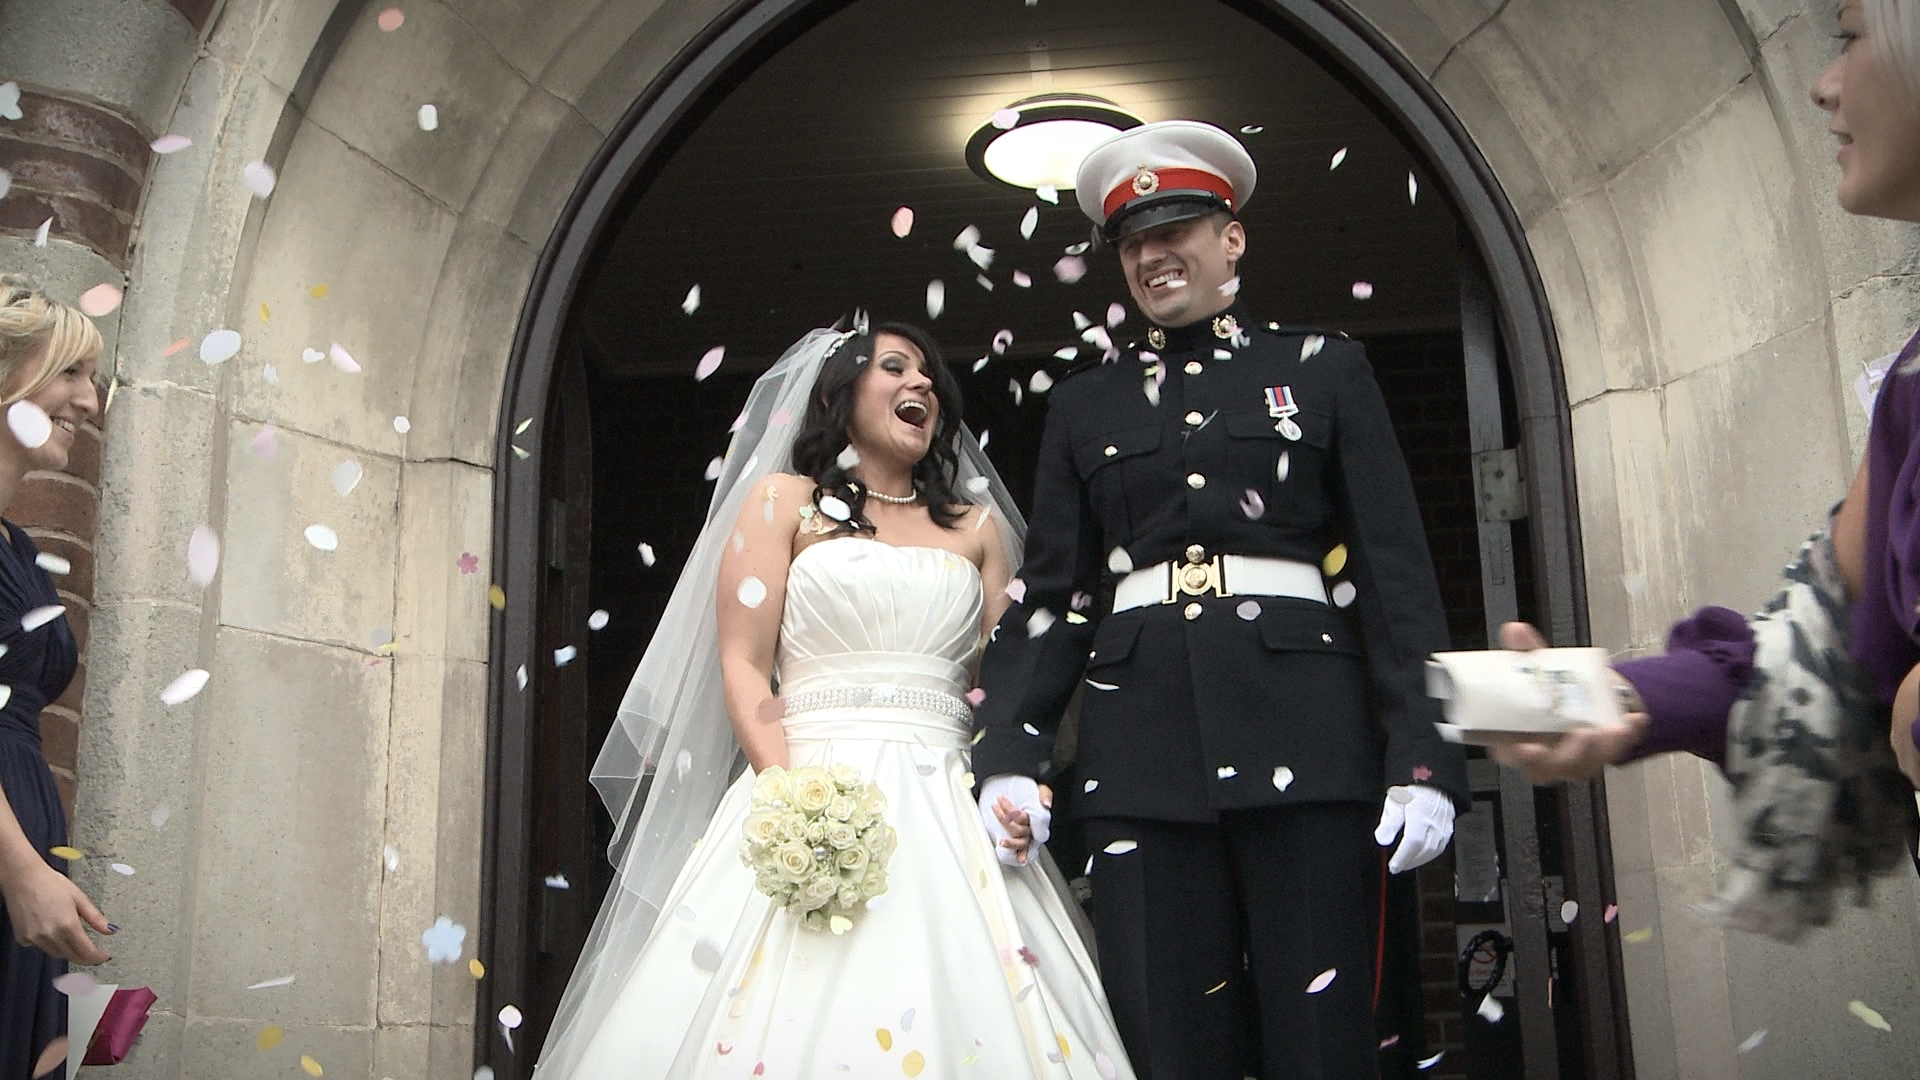 a groom in military dress and bride in white laugh as they stand in their wirral church doorway being showered in confetti for the wedding video